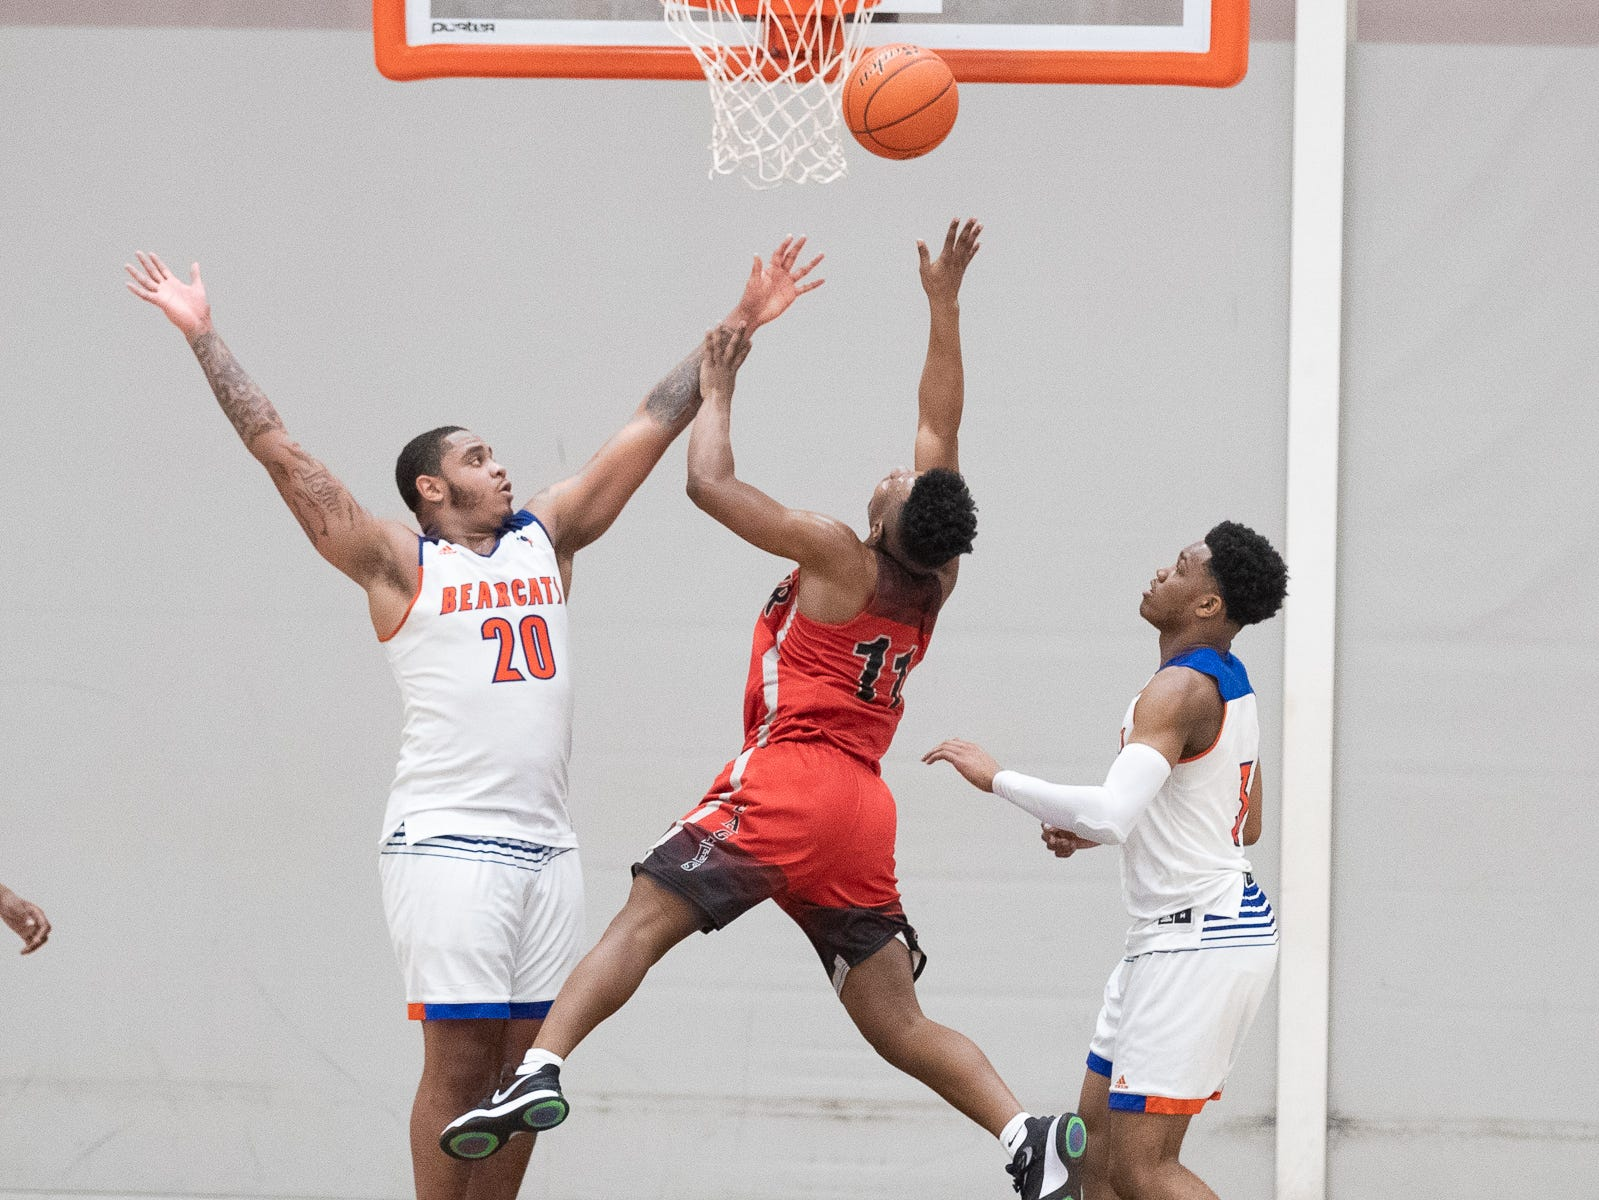 Dover's Victor Dorm (11)  shoots a layup during the second half of a YAIAA quarterfinal between York High and Dover, Saturday, Feb. 9, 2019, at Central York High School. The York High Bearcats defeated the Dover Eagles 75-53.